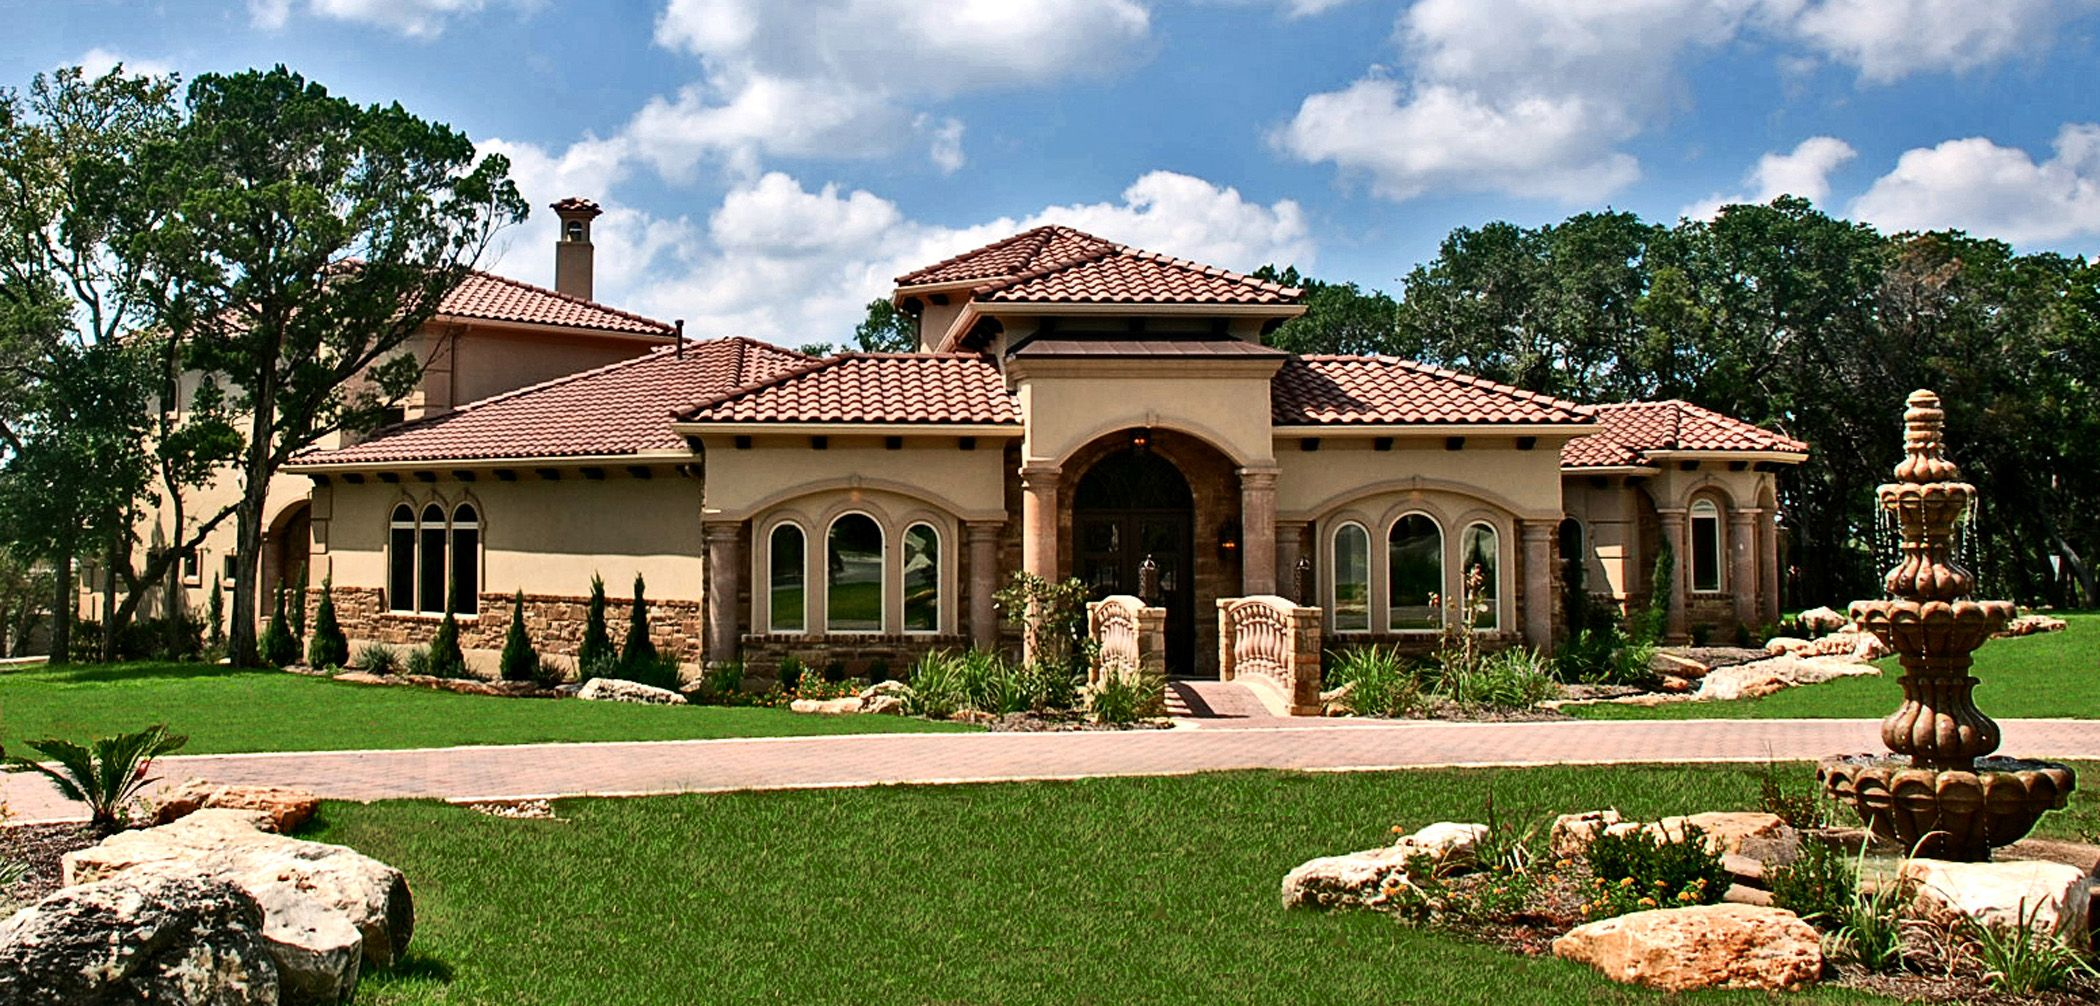 Lakeway texas tuscan front elevation by zbranek holt Mediterranean custom homes